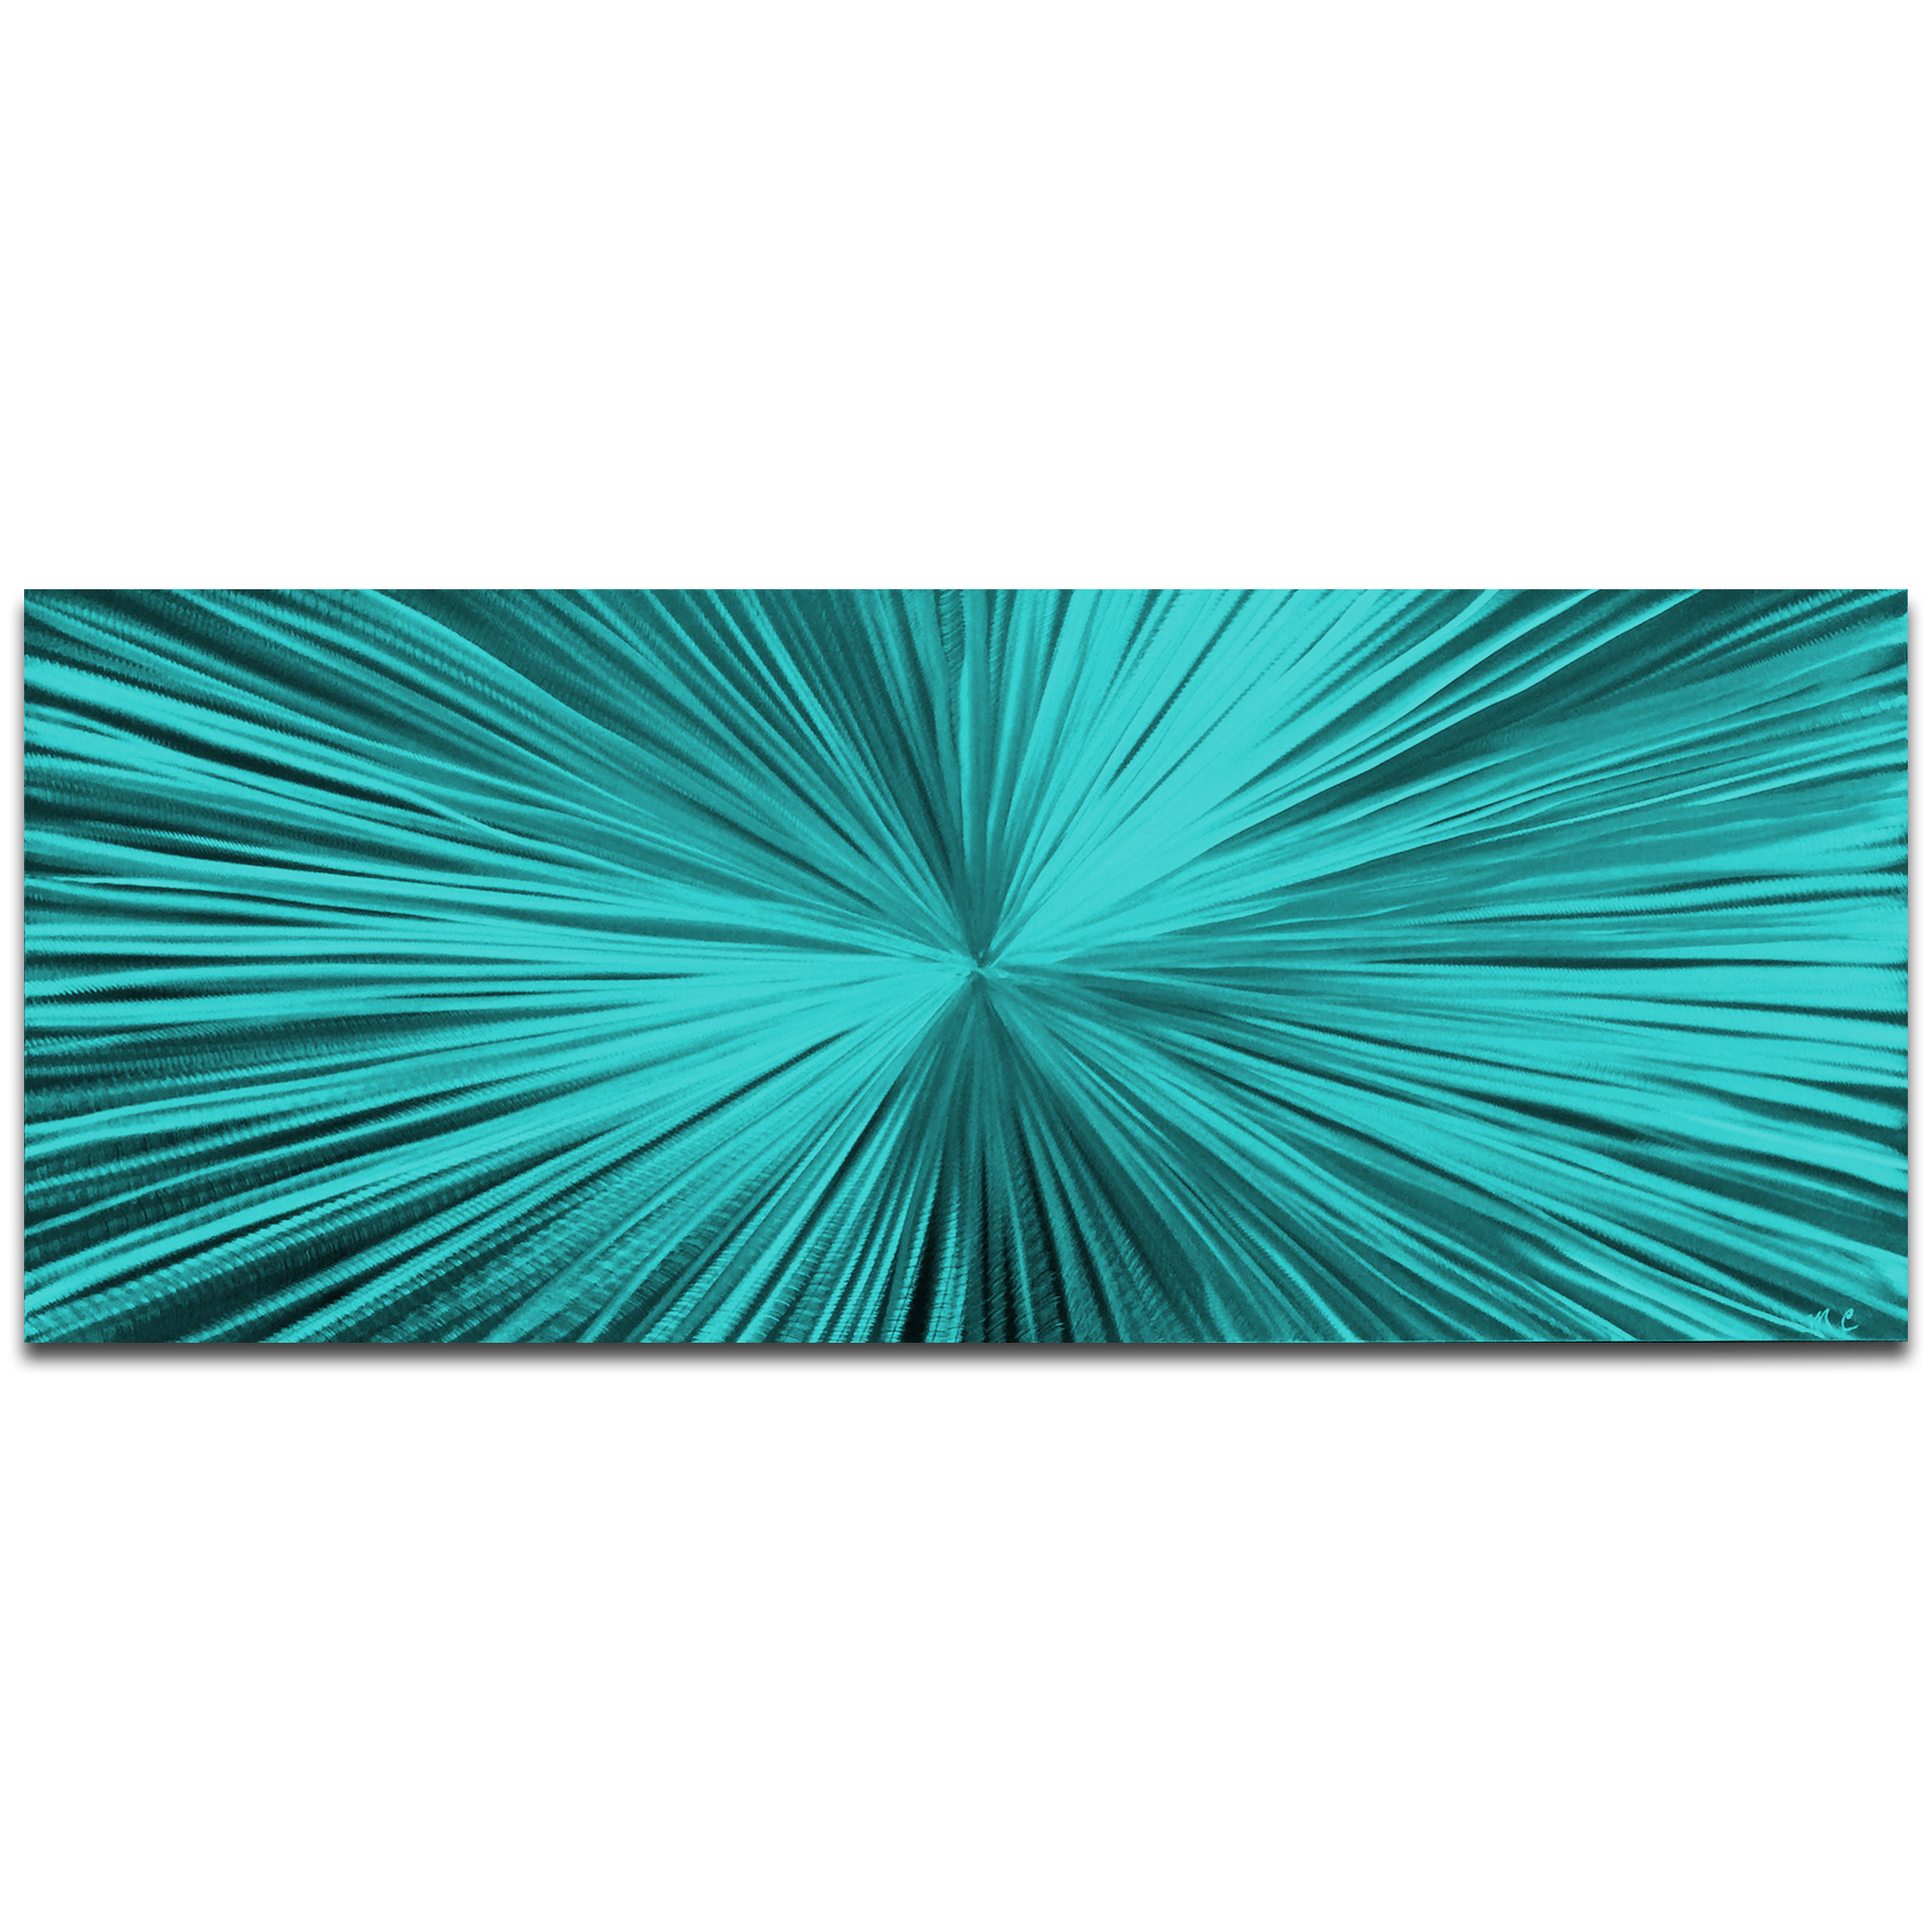 Helena Martin 'Starburst Teal' 60in x 24in Original Abstract Art on Ground and Painted Metal